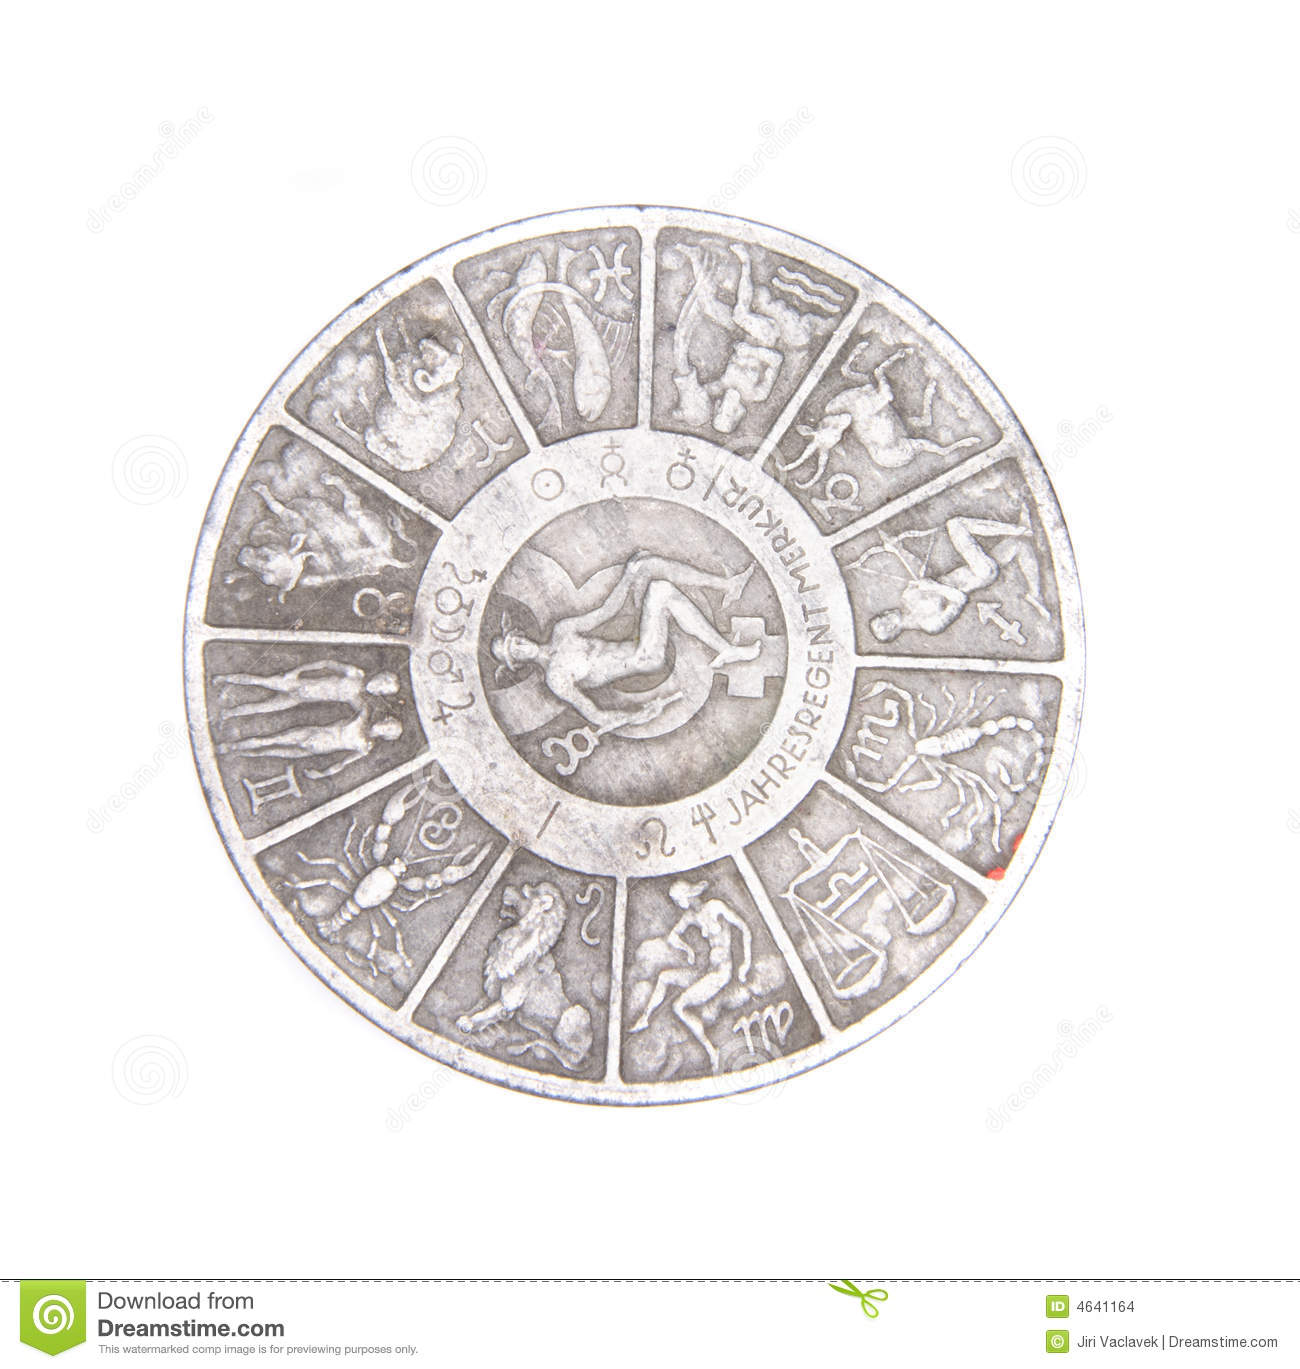 old coins stock image - photo #27